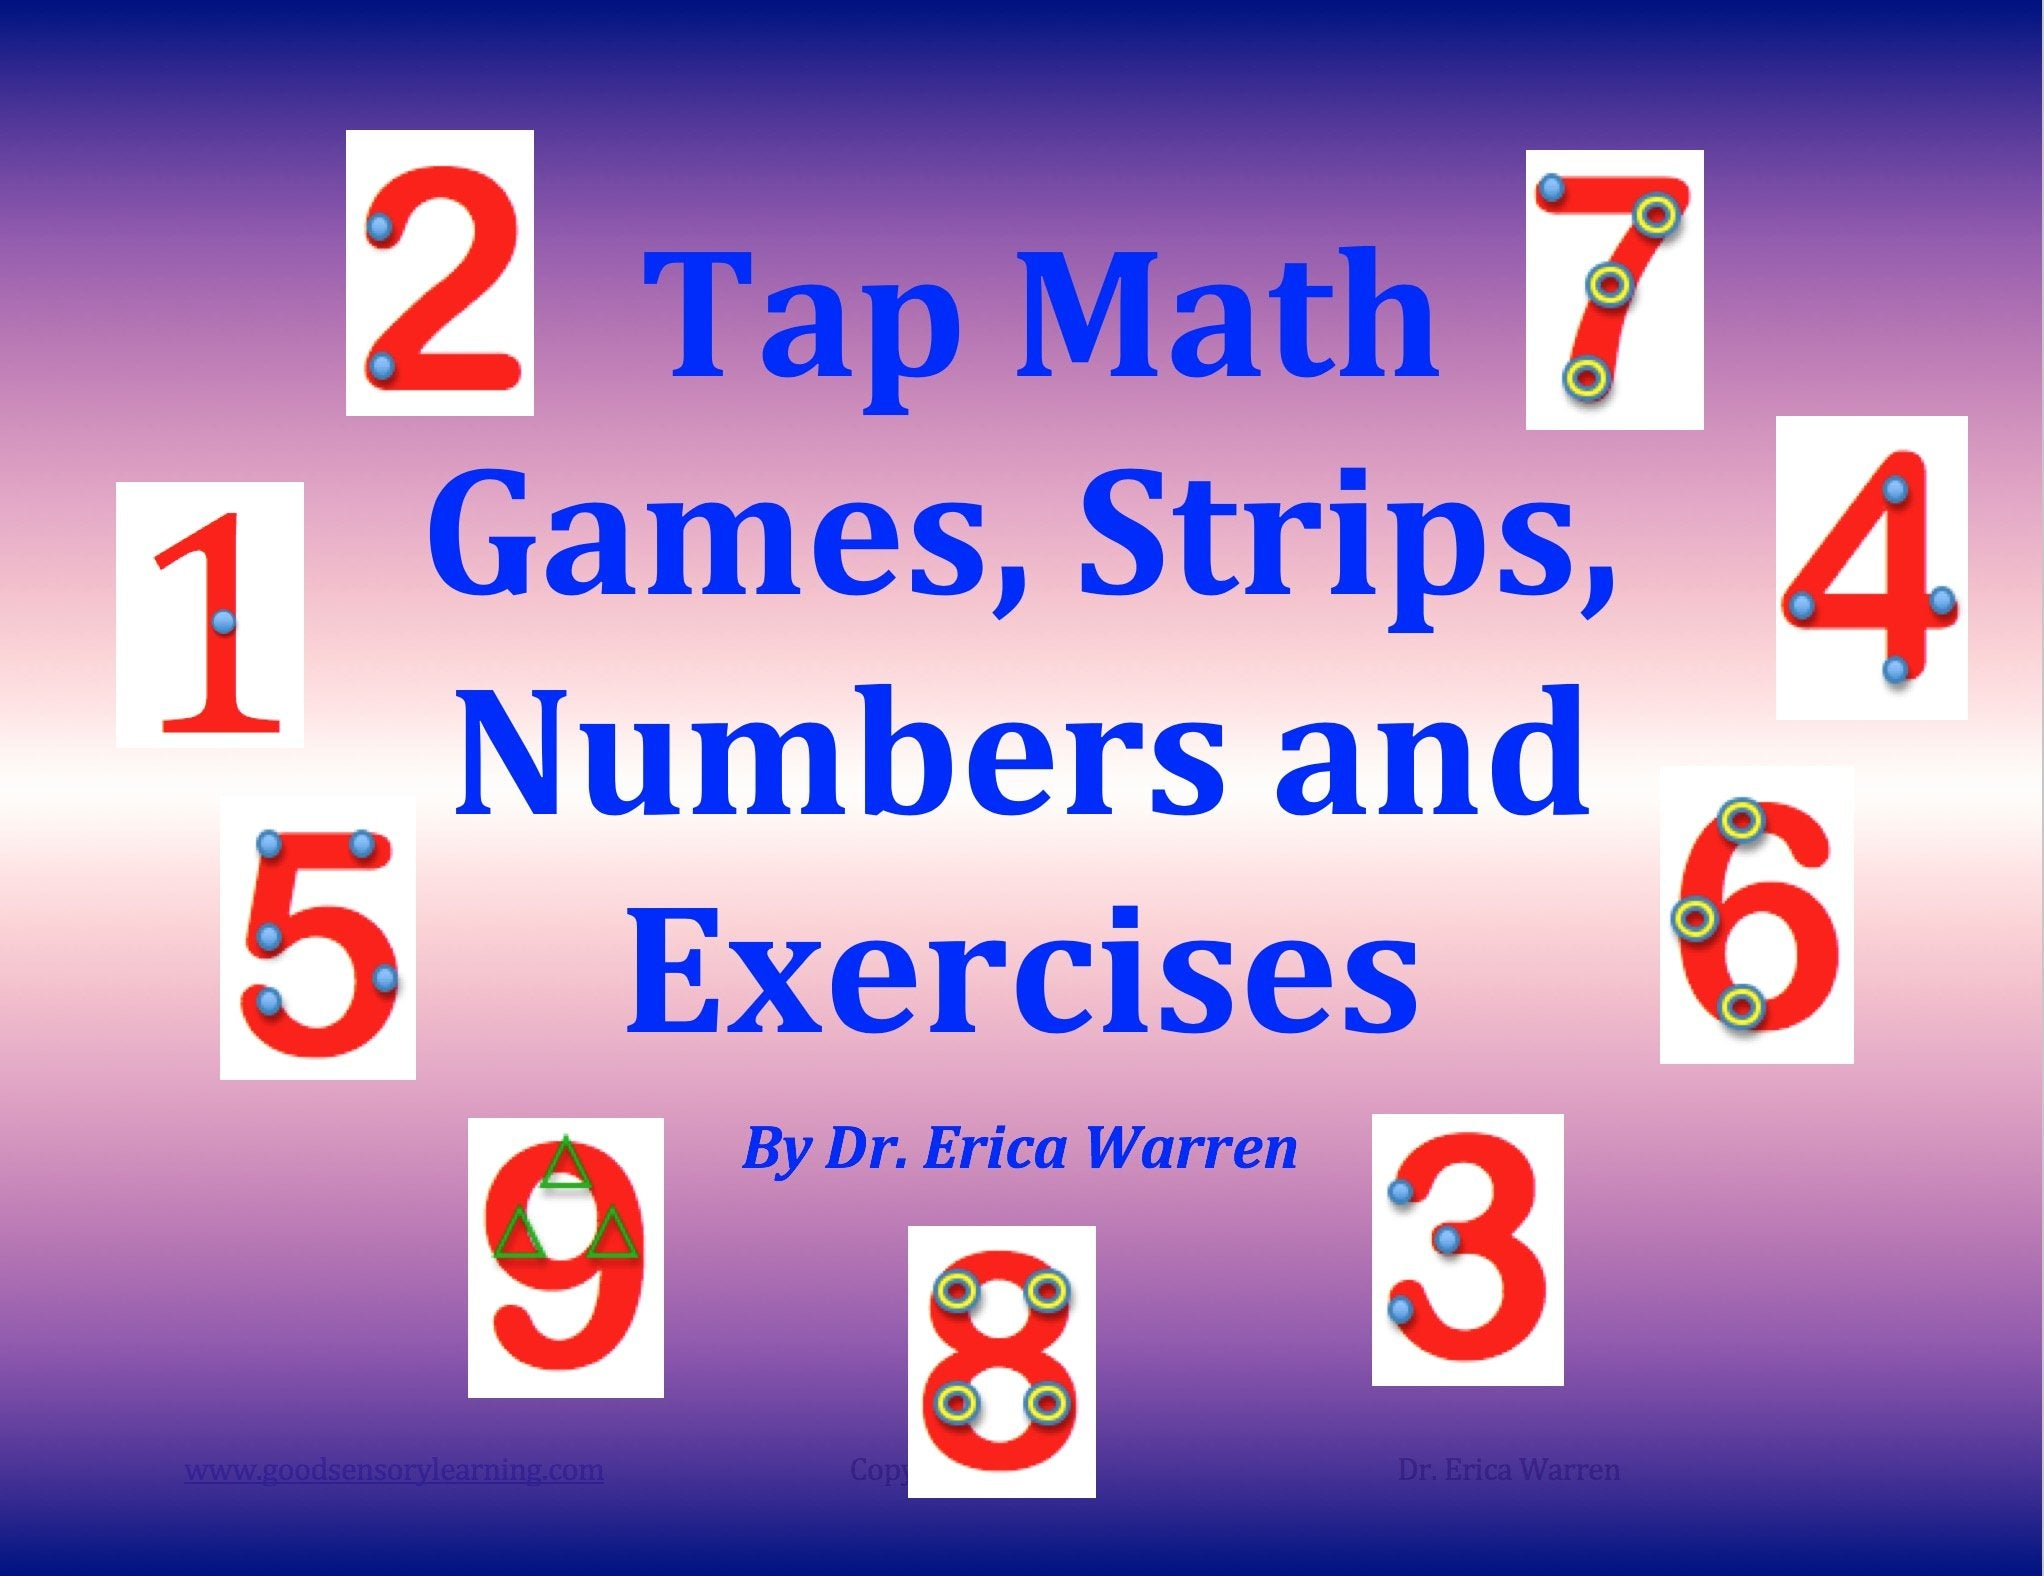 Tap Math Games and More